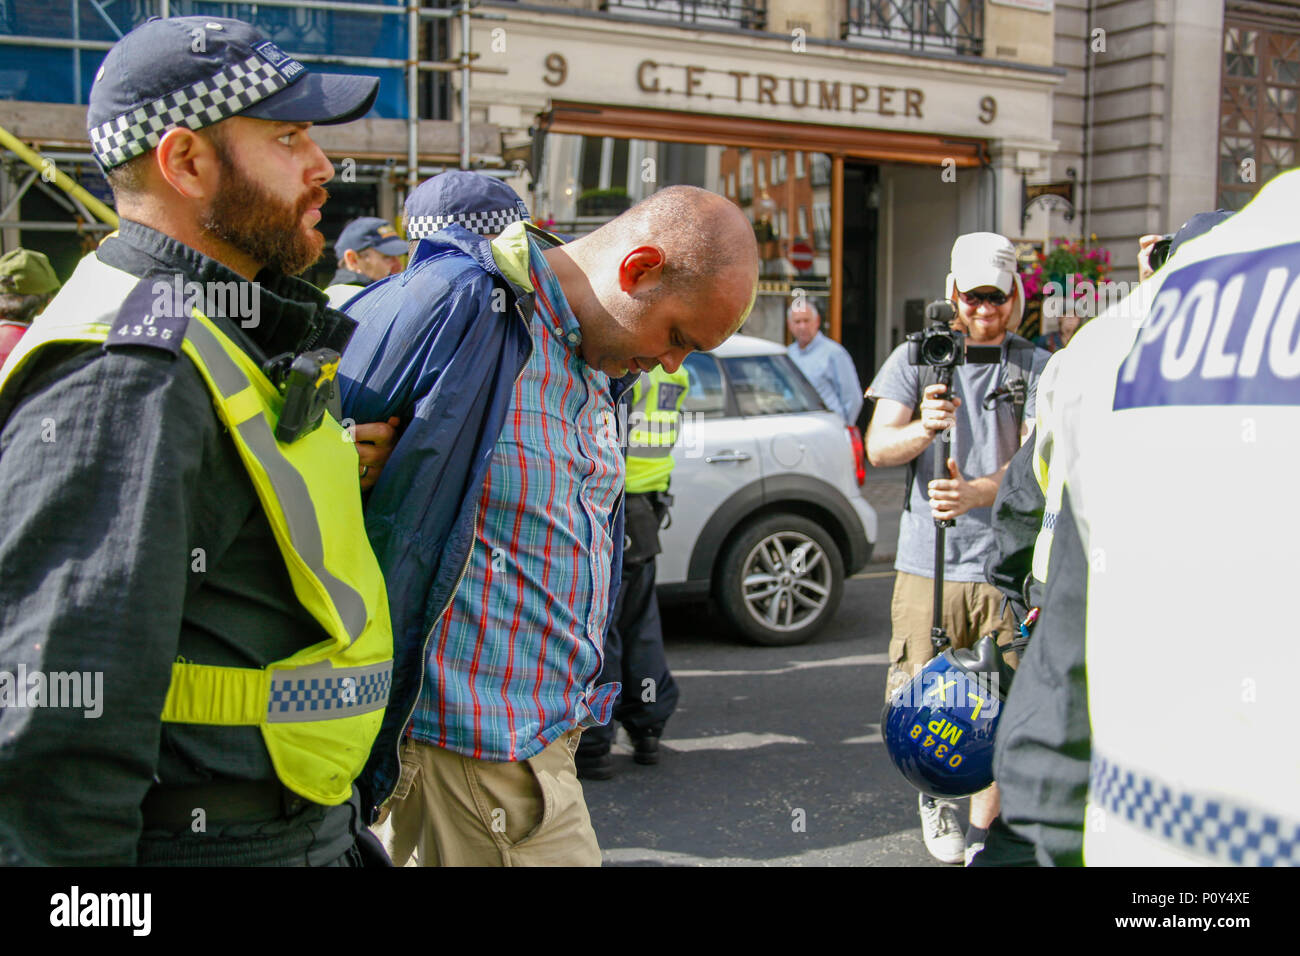 London, UK. 10th June 2018. Counter-protester arrested at the Al-Quds March Credit: Alex Cavendish/Alamy Live News - Stock Image